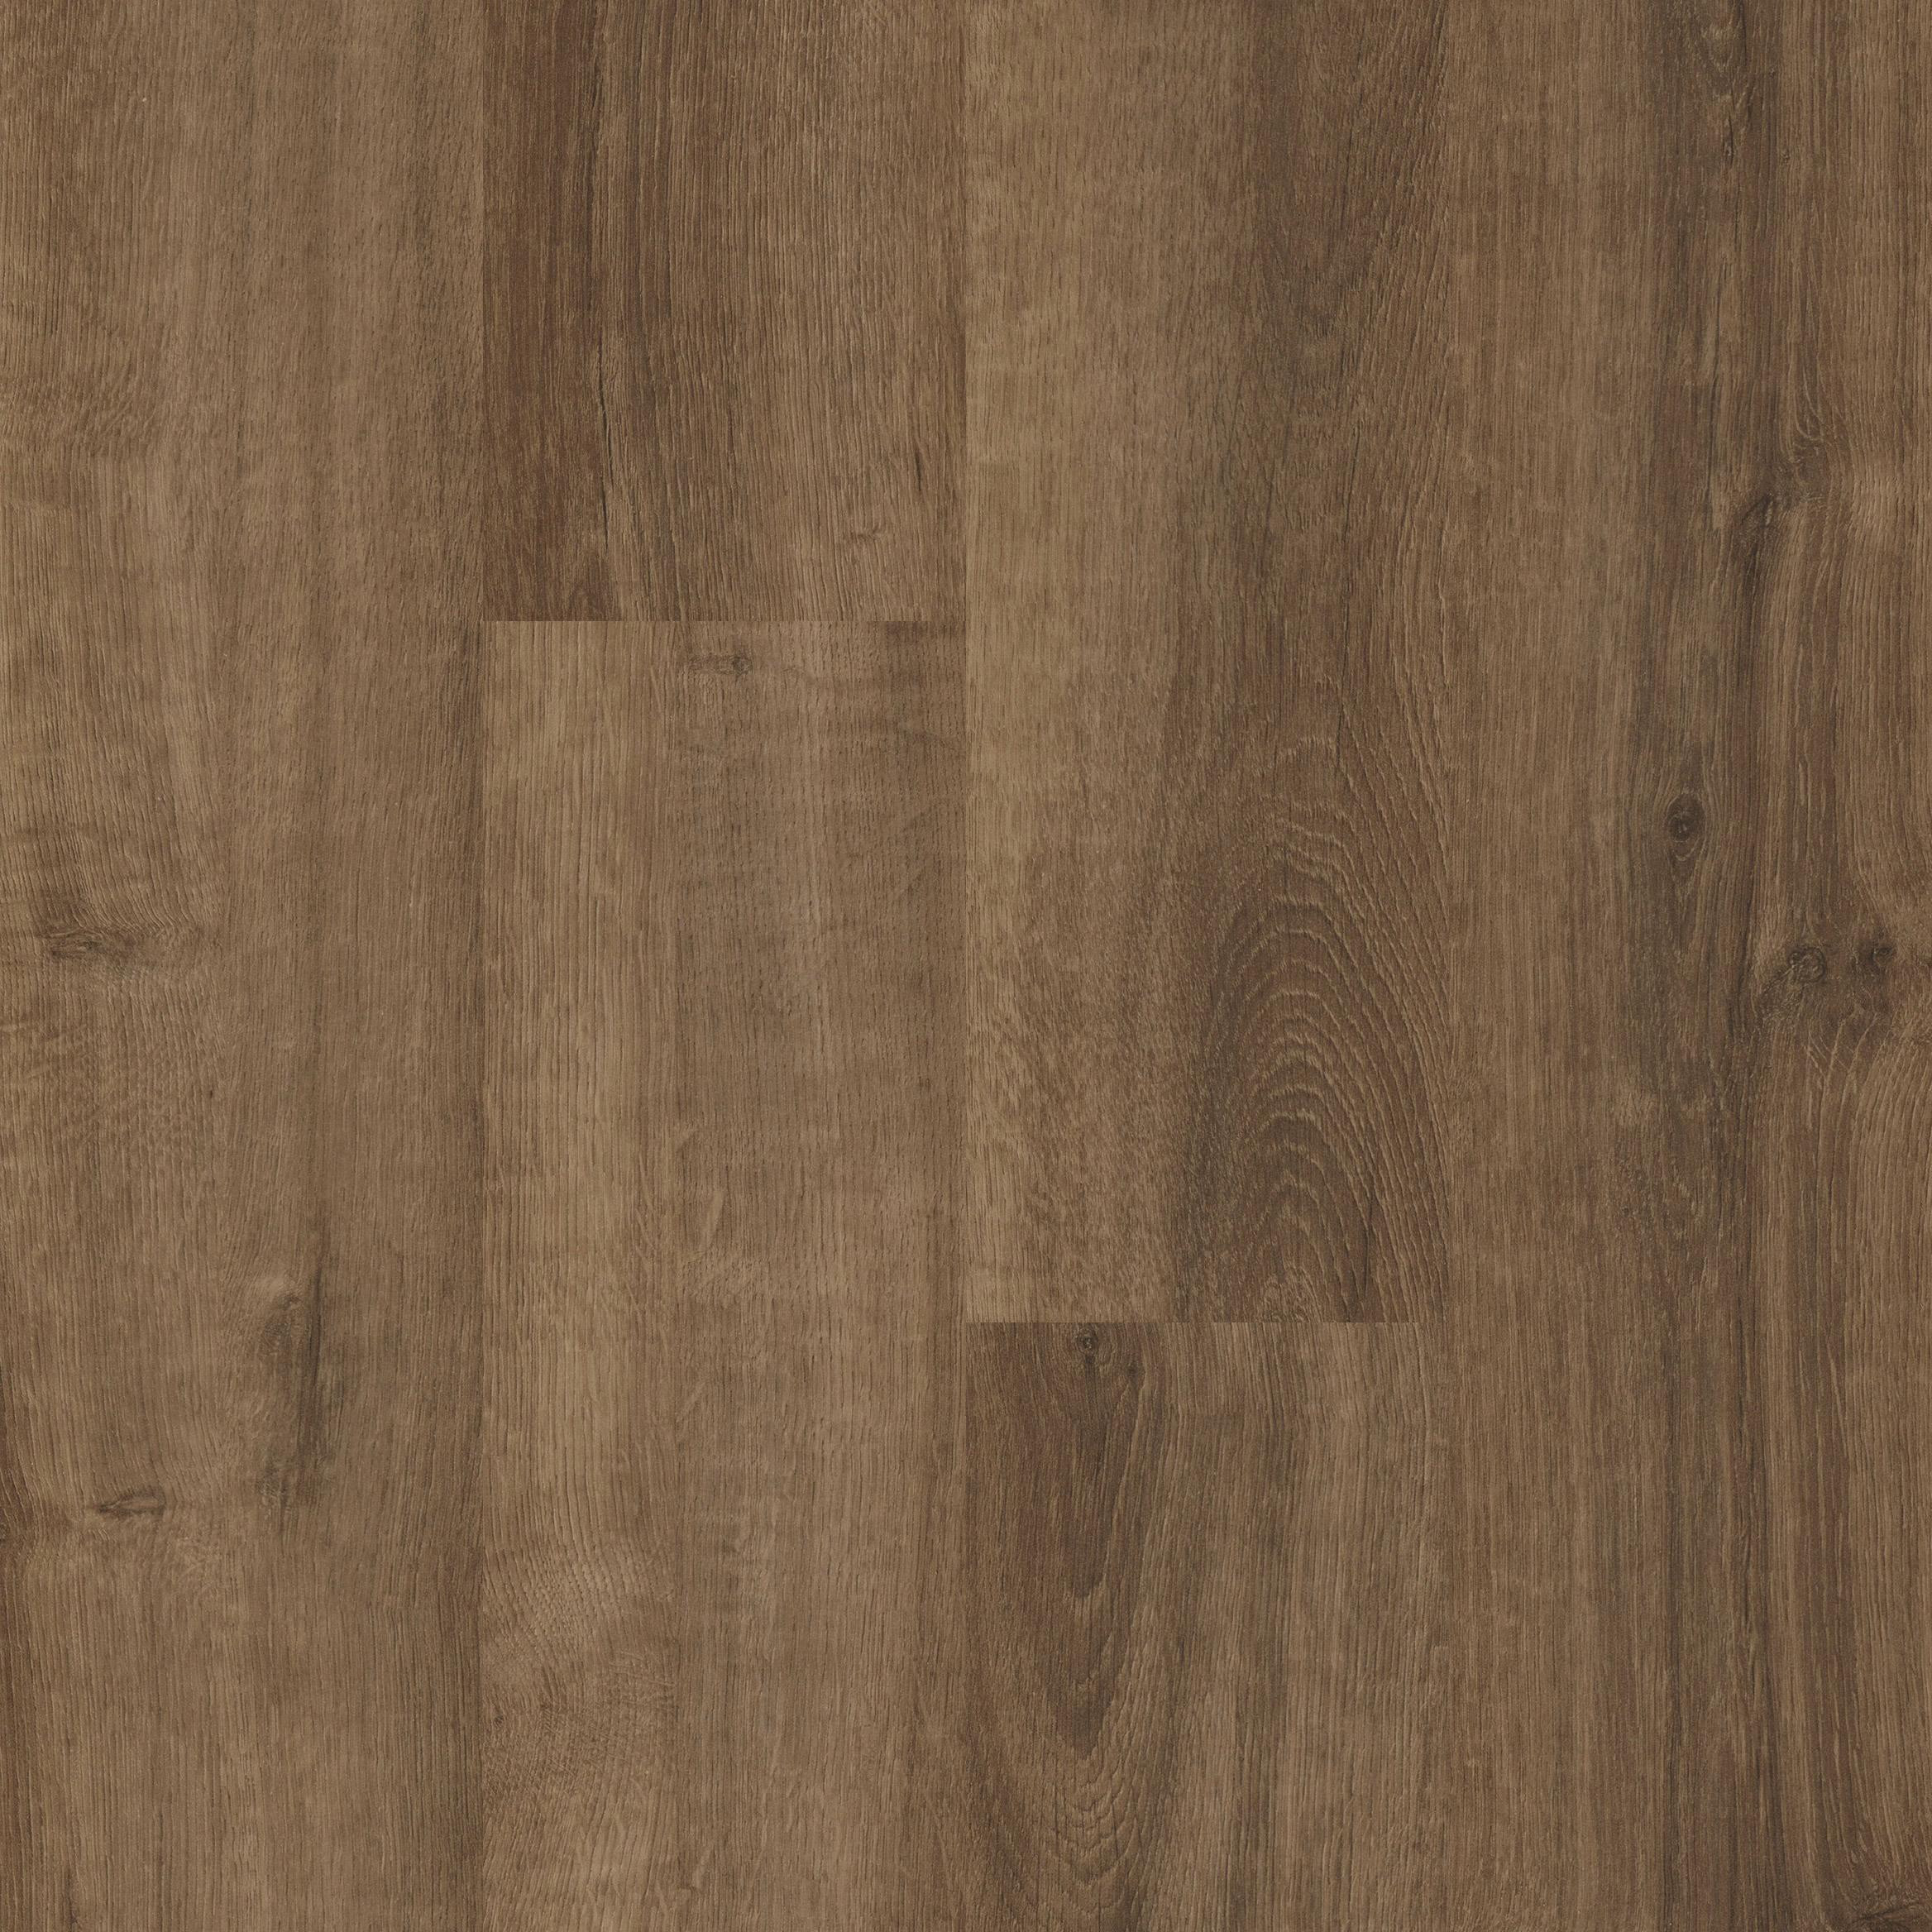 hickory hardwood flooring colors of ivc moduleo horizon distressed stagecoach hickory 6 waterproof in ivc moduleo horizon distressed stagecoach hickory 6 waterproof click together lvt vinyl plank flooring